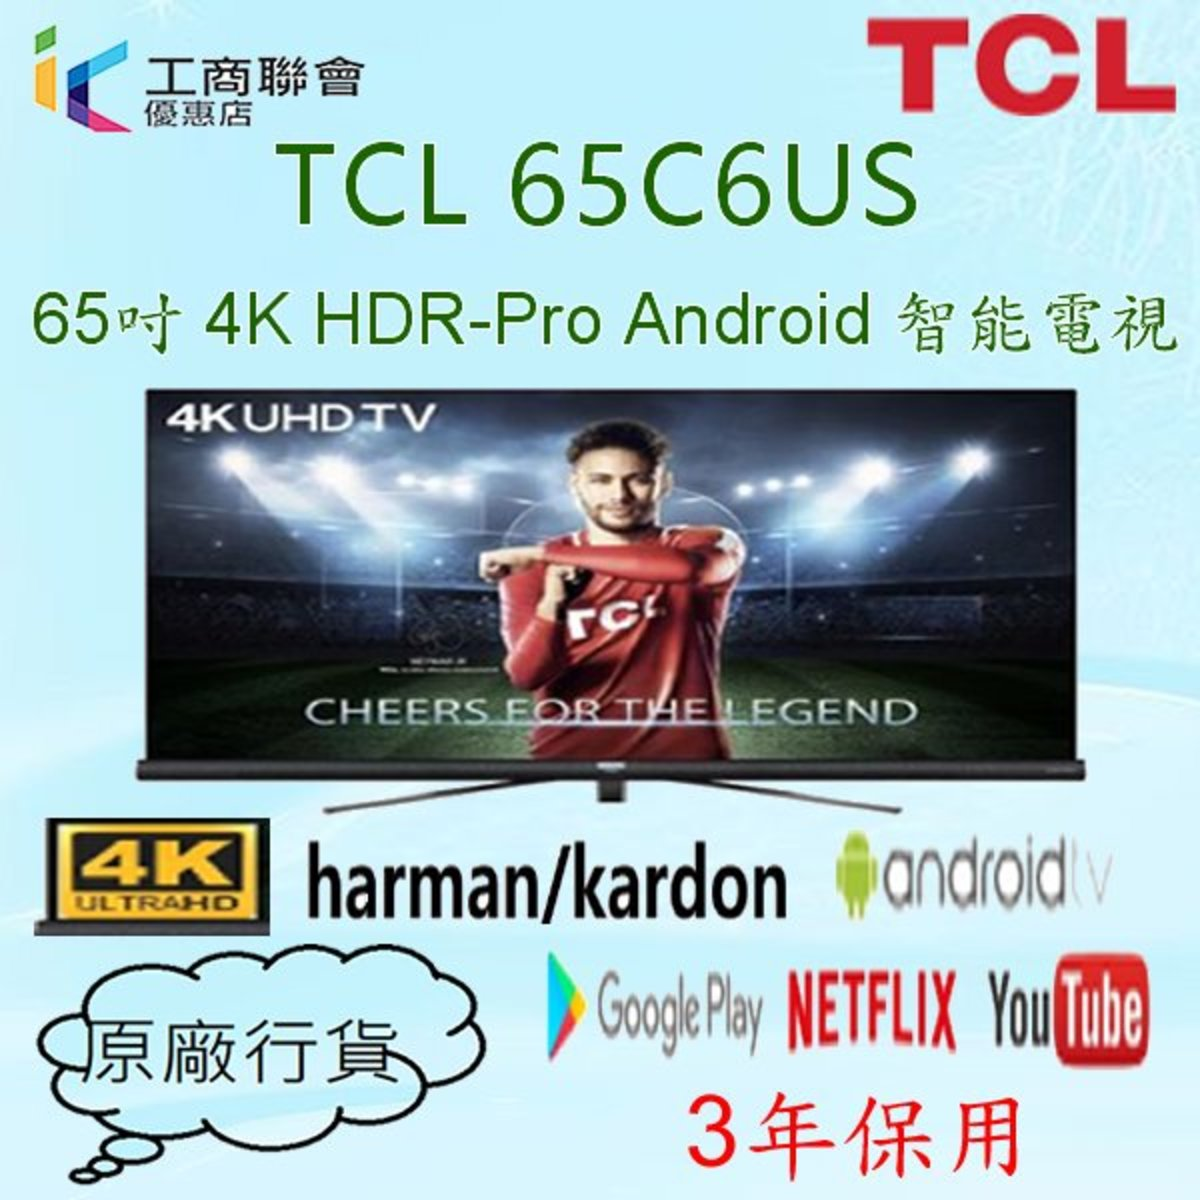 "65C6US 65"" 4K HDR-PRO Android™ TV with harman/kardon™ Speake"